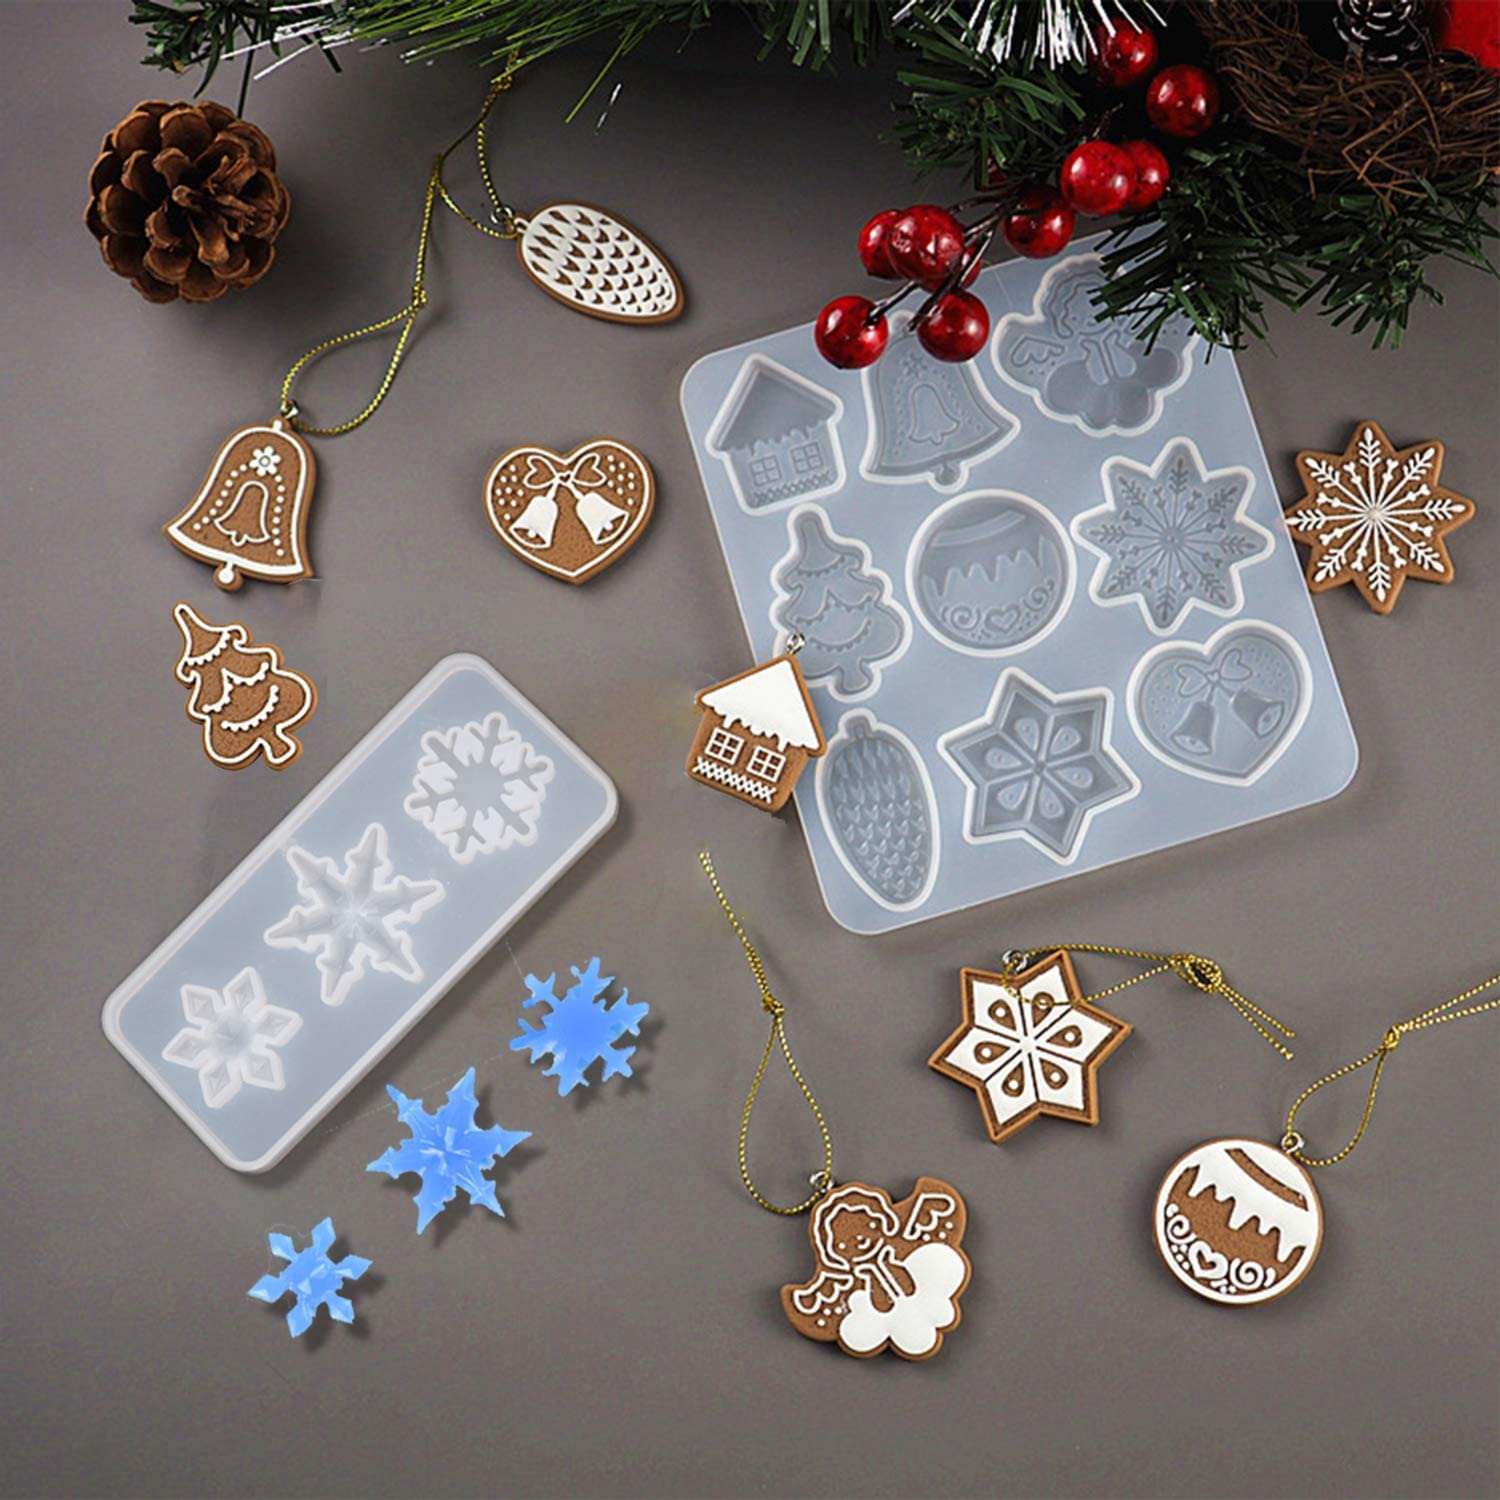 Christmas Ornament Silicone Molds, DIY Resin Crystal Epoxy Molds Christmas Tree Snowflake Elk Pendant Keychain Listing Jewelry Silicone Molds Set(2 Pack)